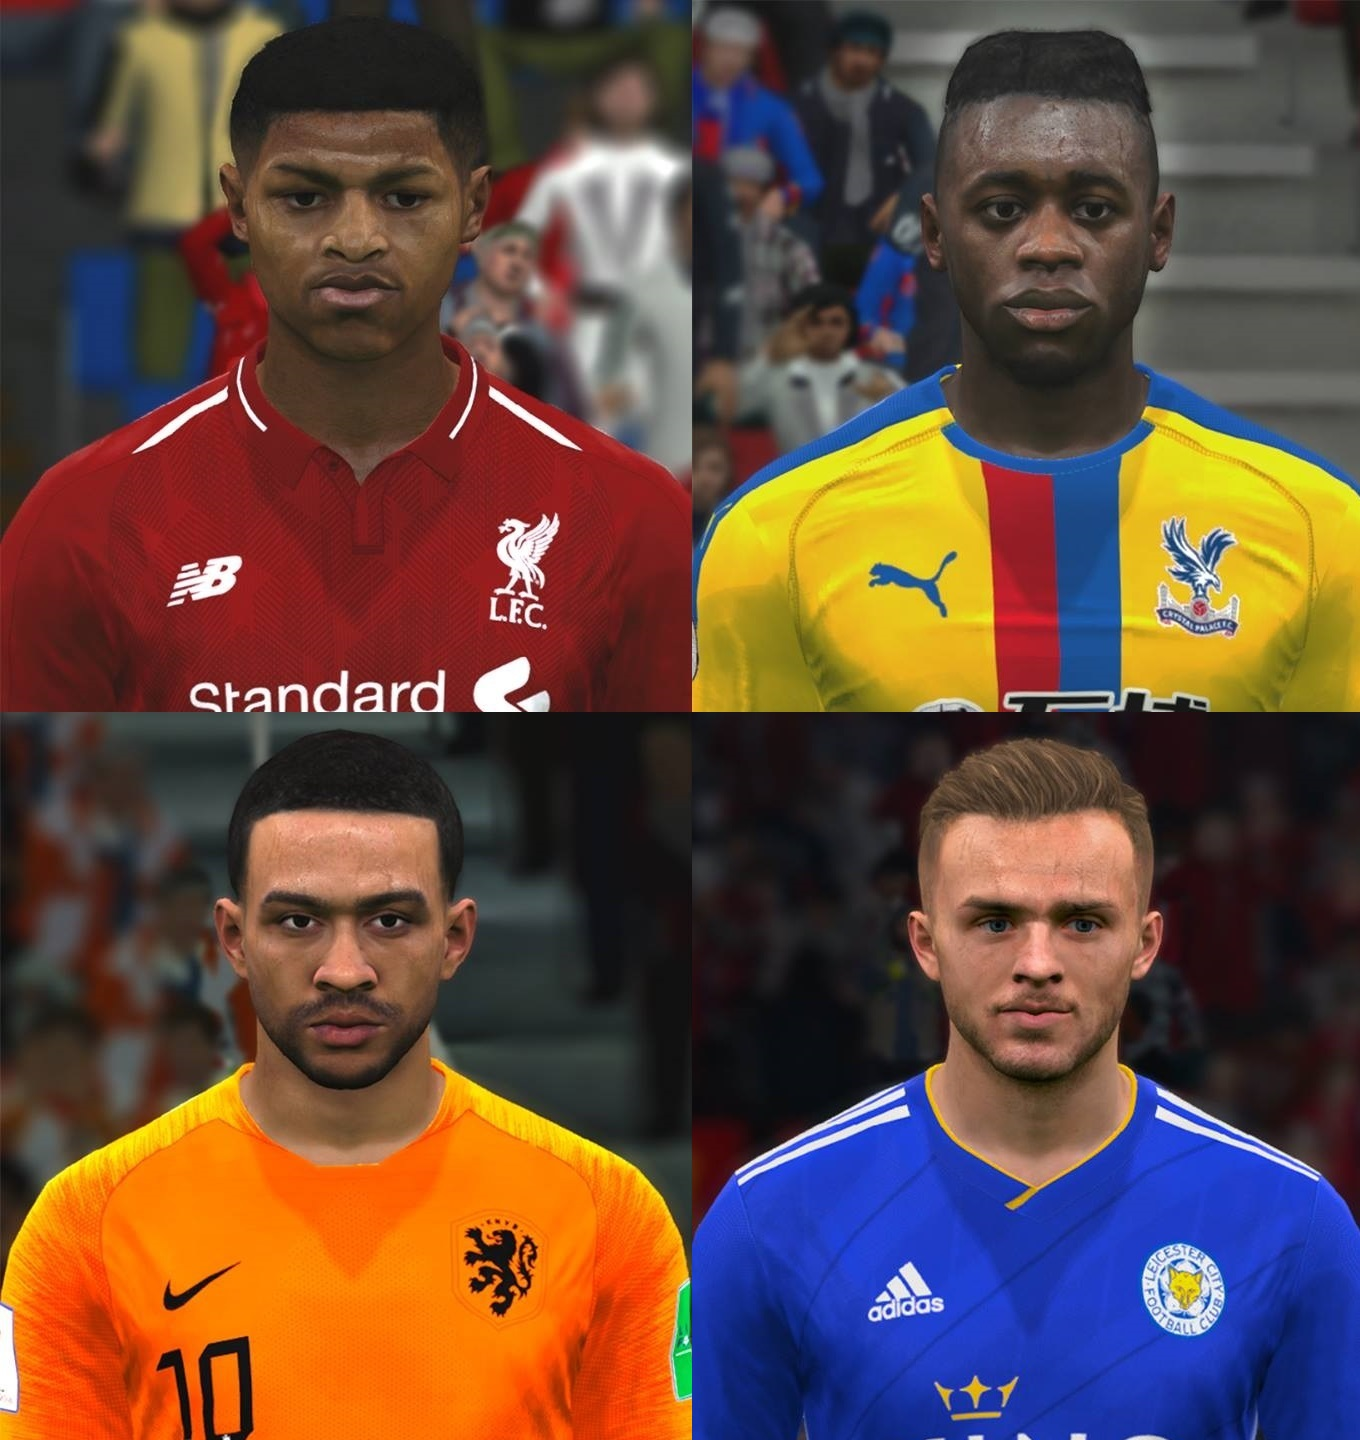 Pes 2019 Faces Lucas Moura By Hugimen: Free Download Latest Pro Evolution